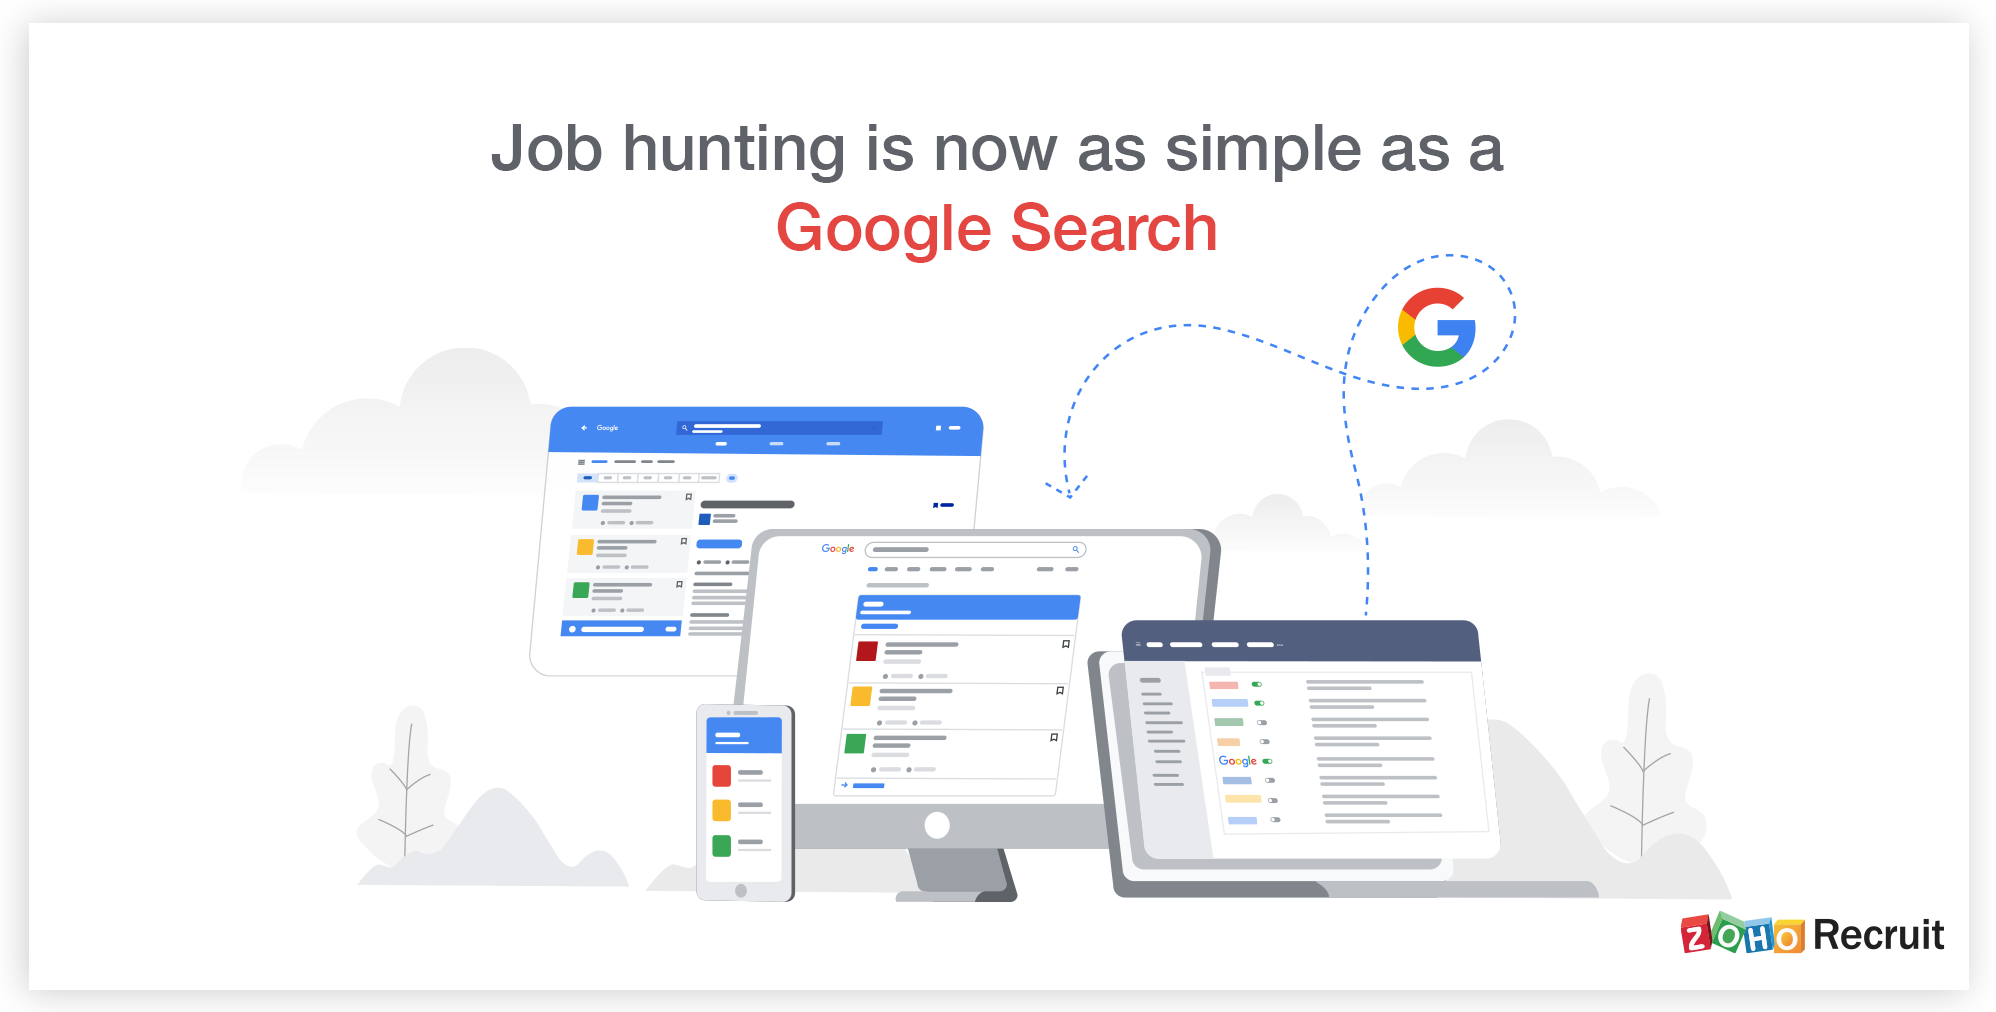 Get your jobs to the top of Google Search with Zoho Recruit